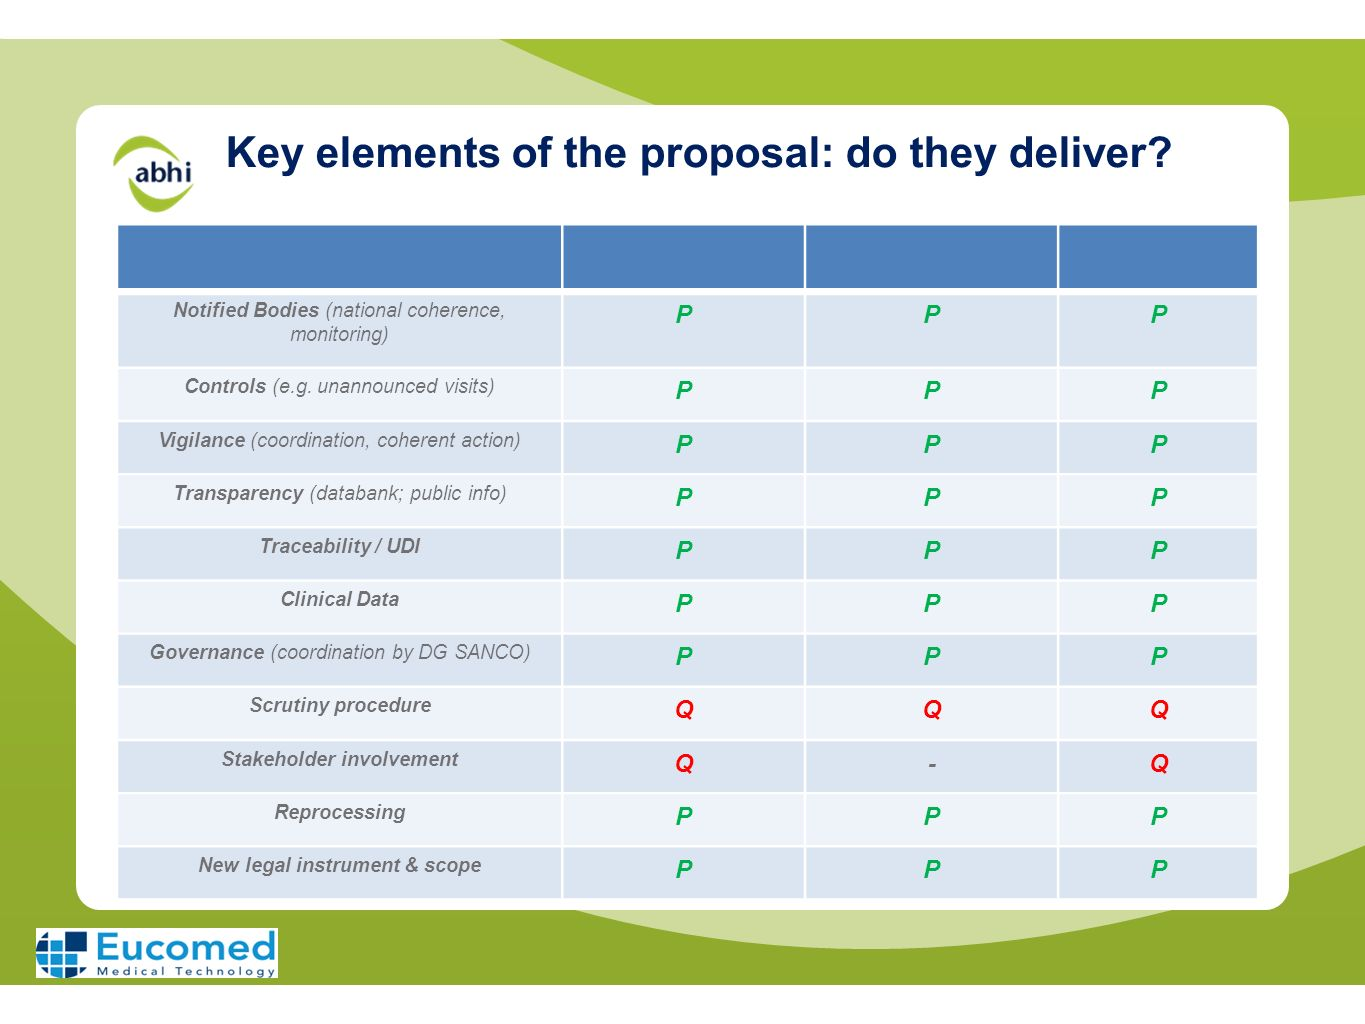 Key elements of the proposal: do they deliver